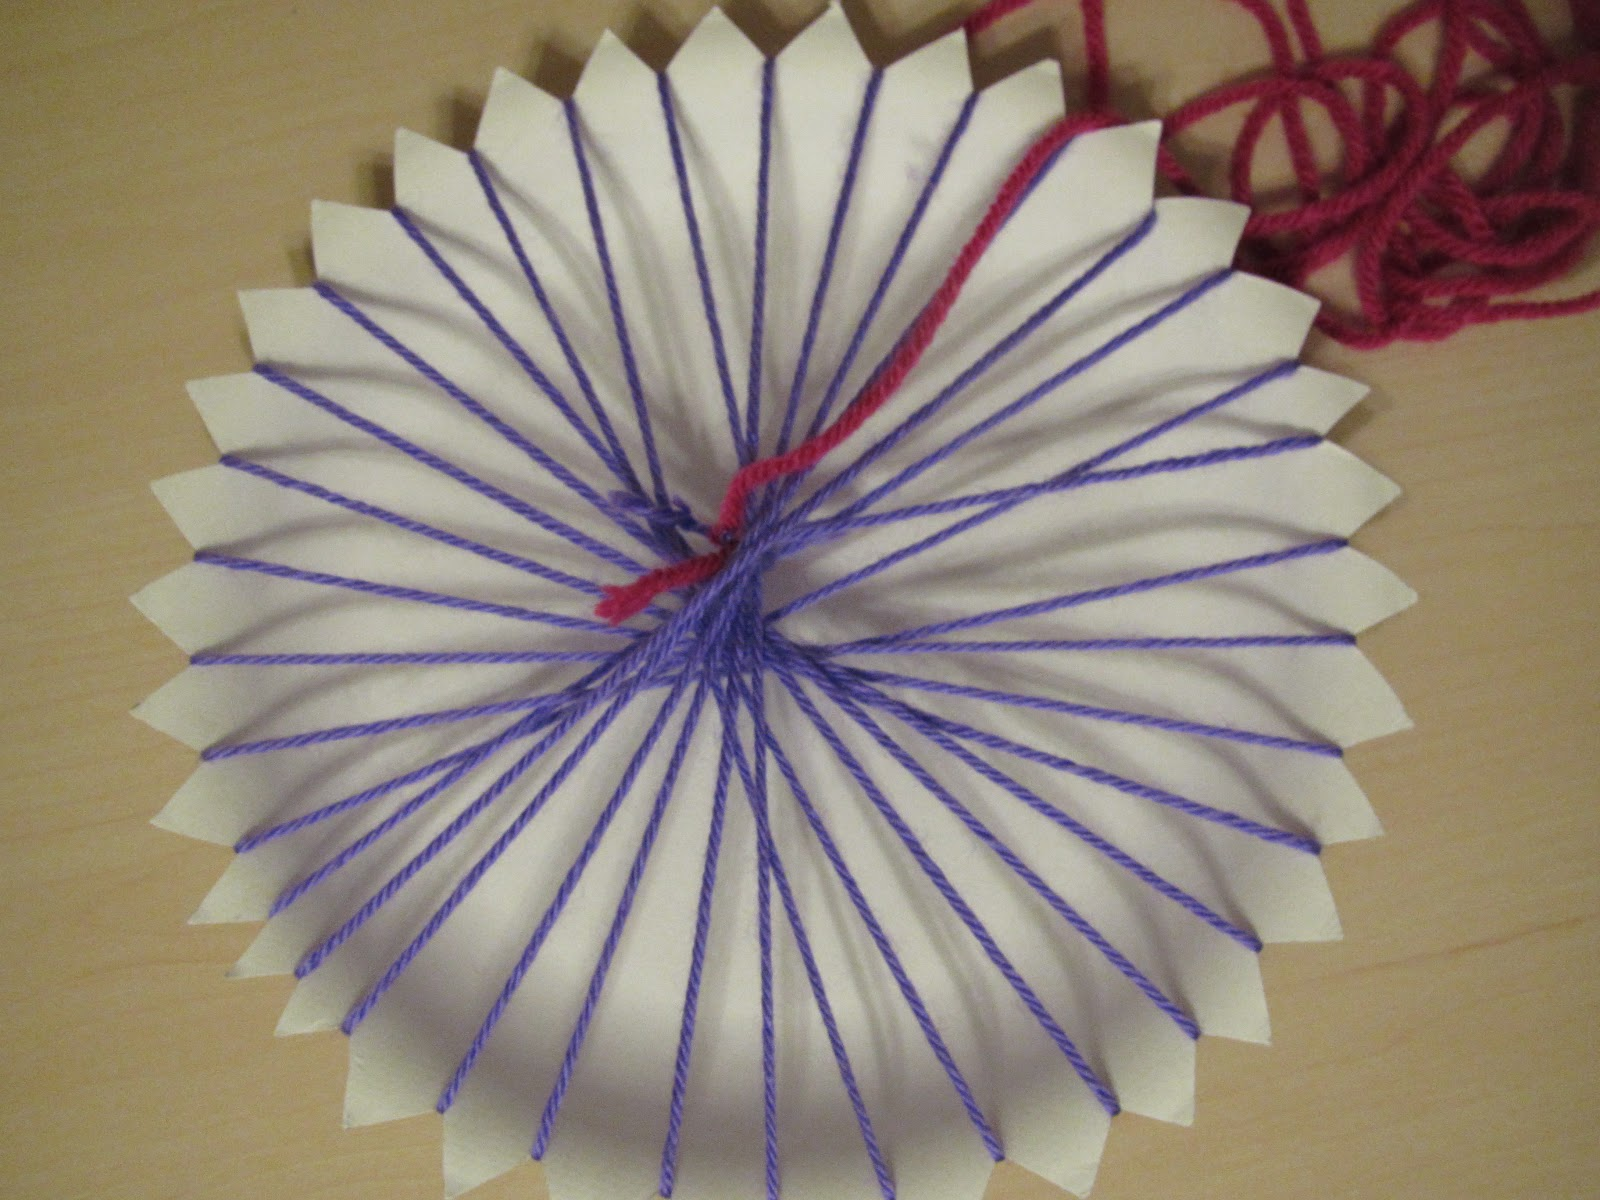 & Paper Plate Weaving Step by Step - Lessons With Laughter